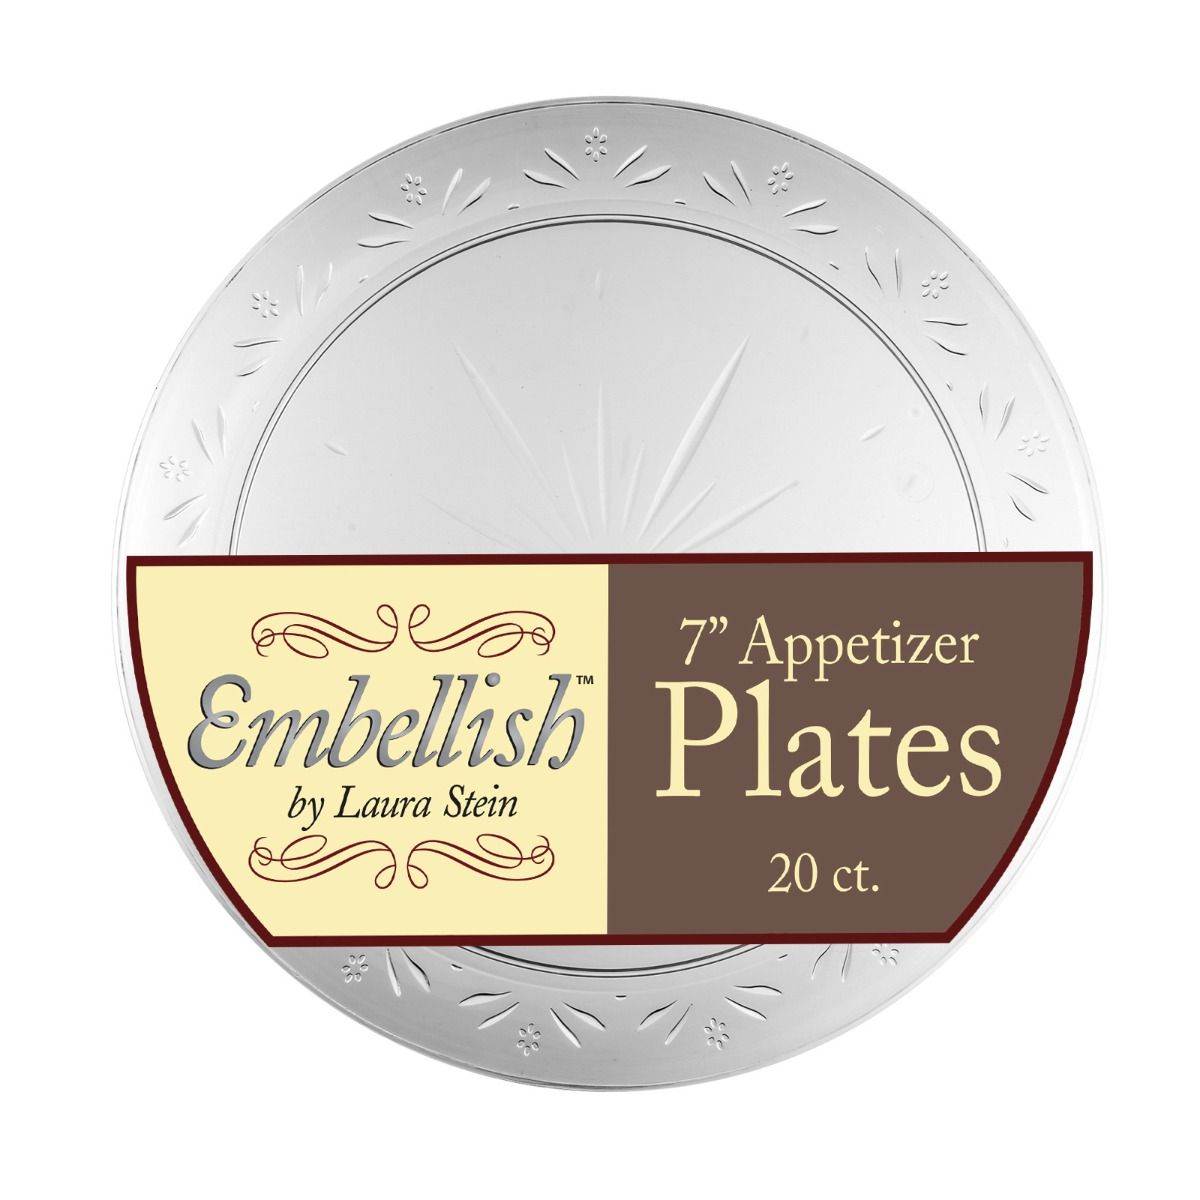 Embellish 7  Salad Plates - Clear Plastic - 20 Count ...  sc 1 st  Fantastic Inc & Embellish 7